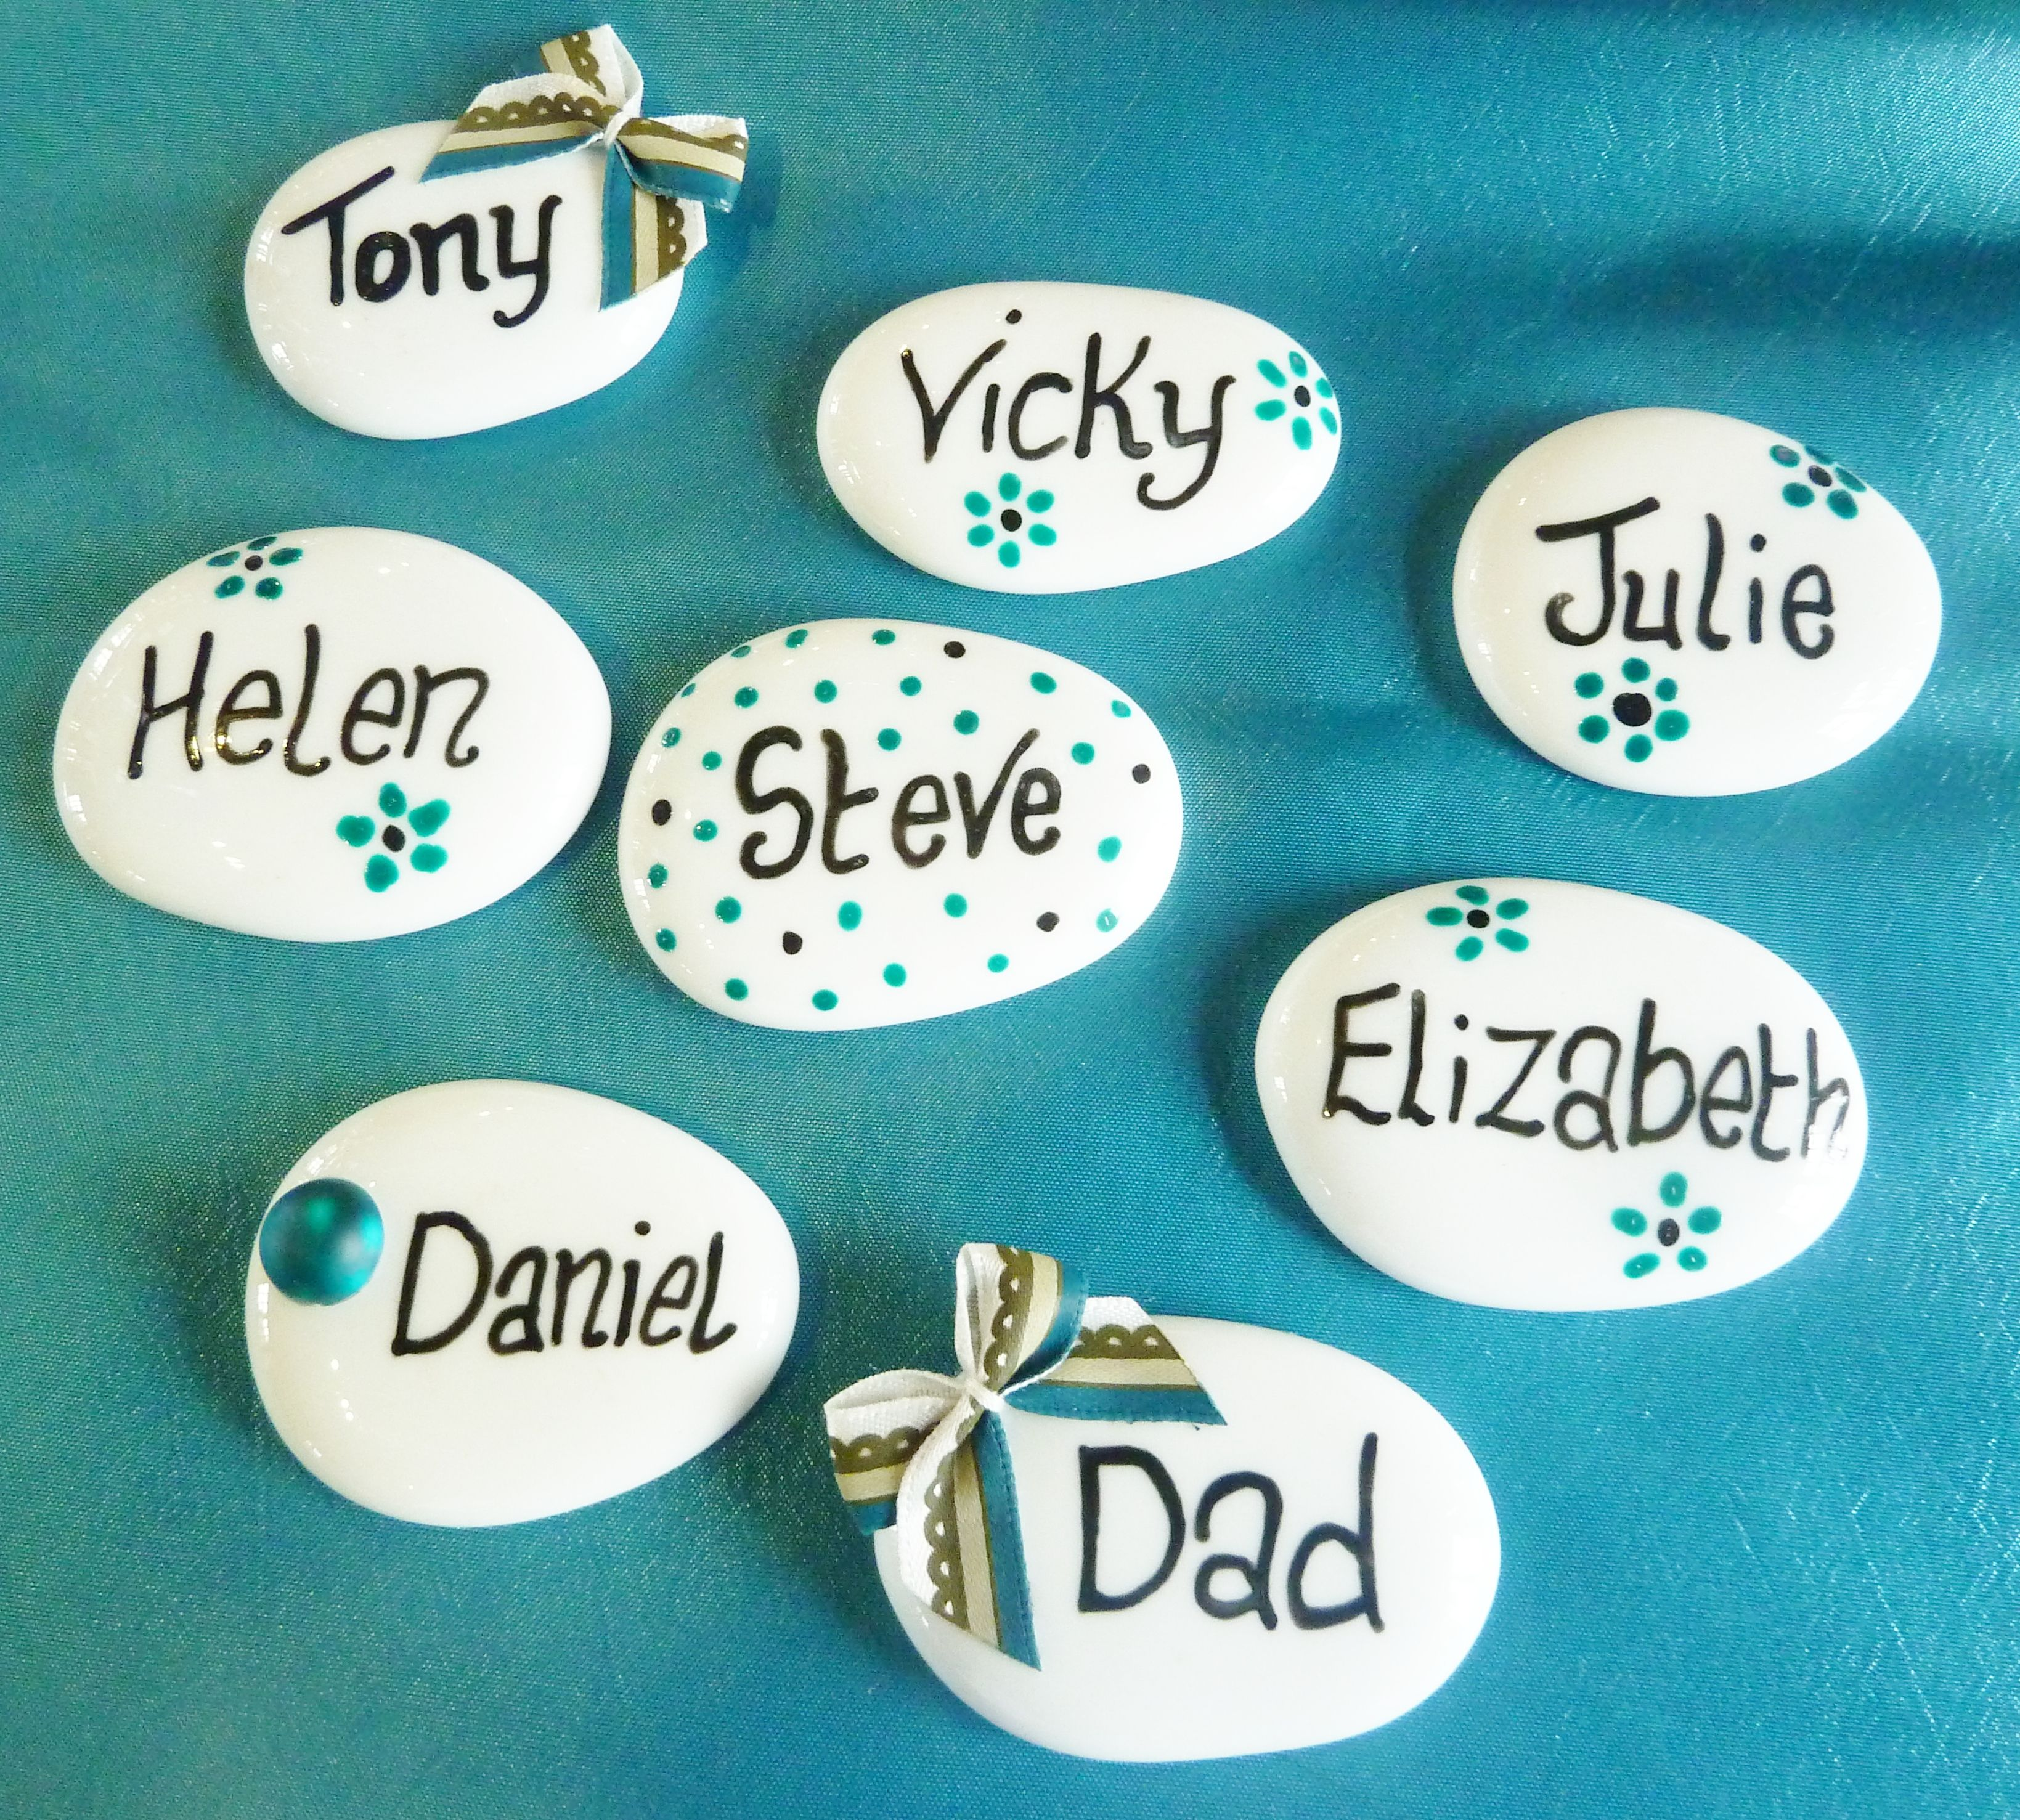 A wedding table name places ♥ | stone painting | Pinterest ...